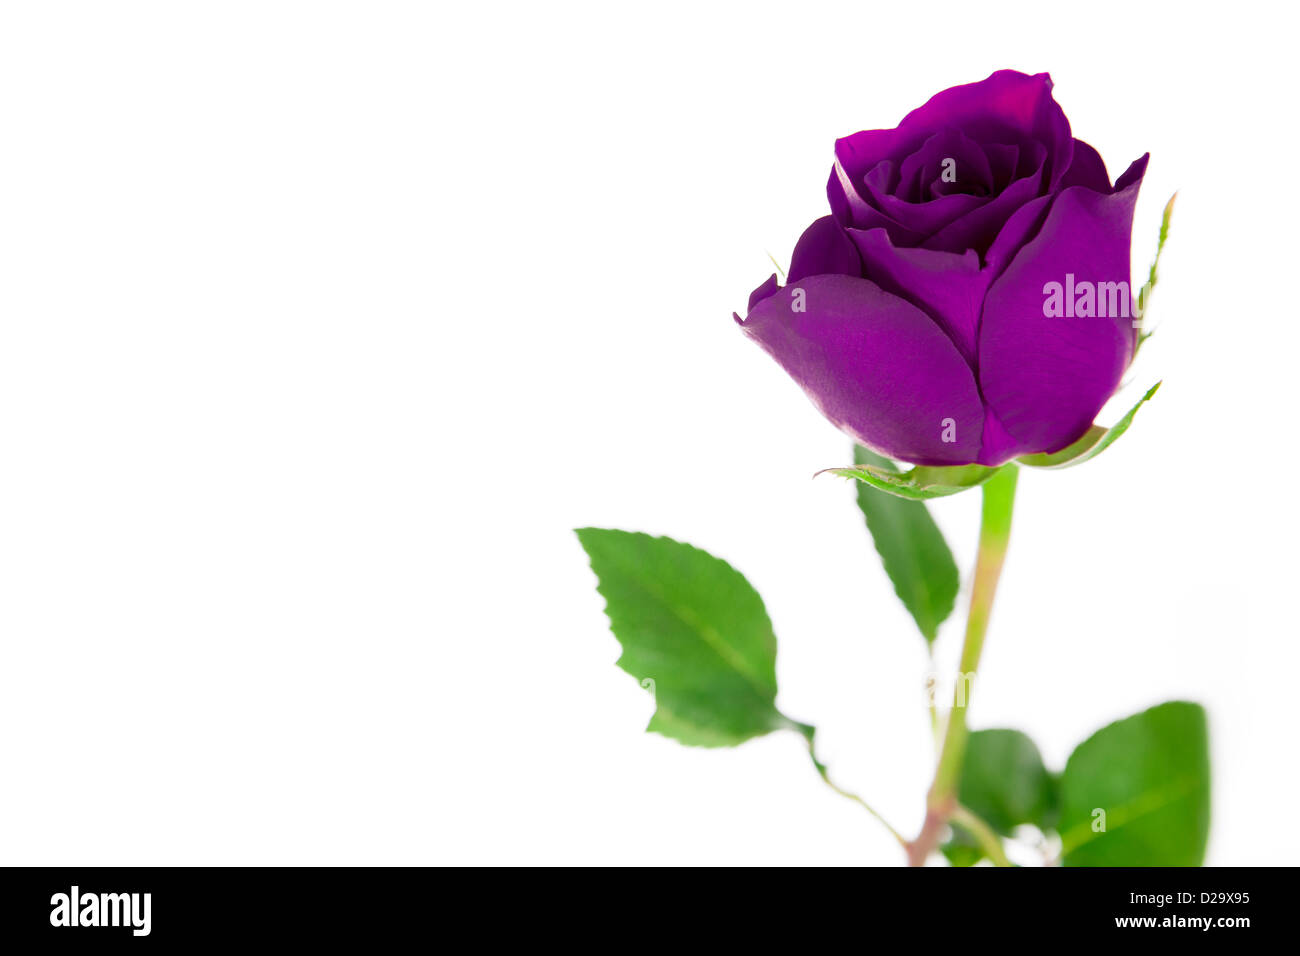 A Single Rose Wallpapers And Images: Wallpapers Gallery